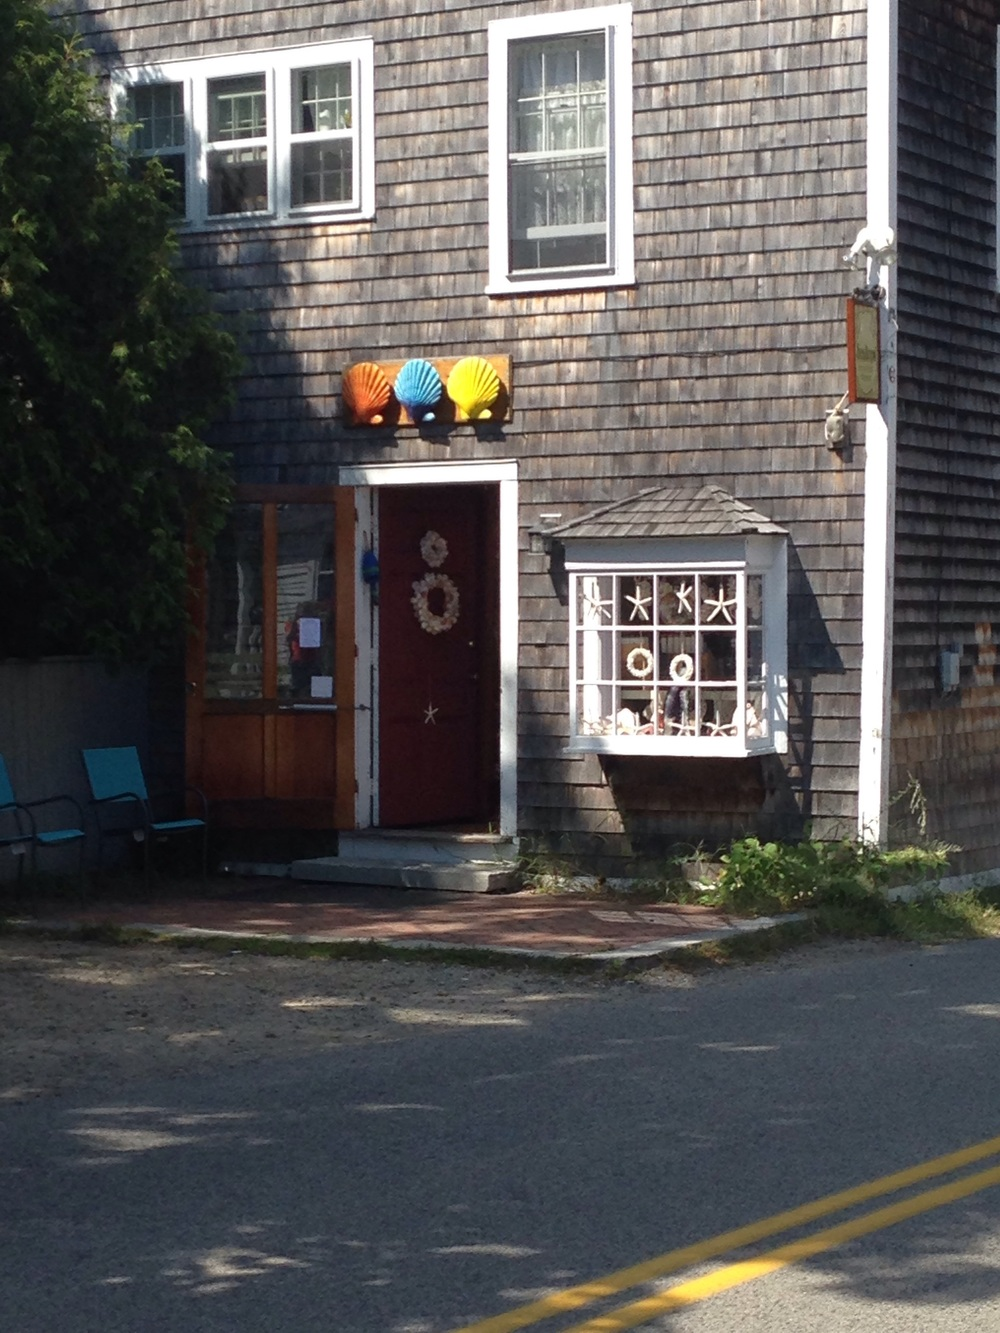 Lots of cute shops to explore in Ogunquit, Maine